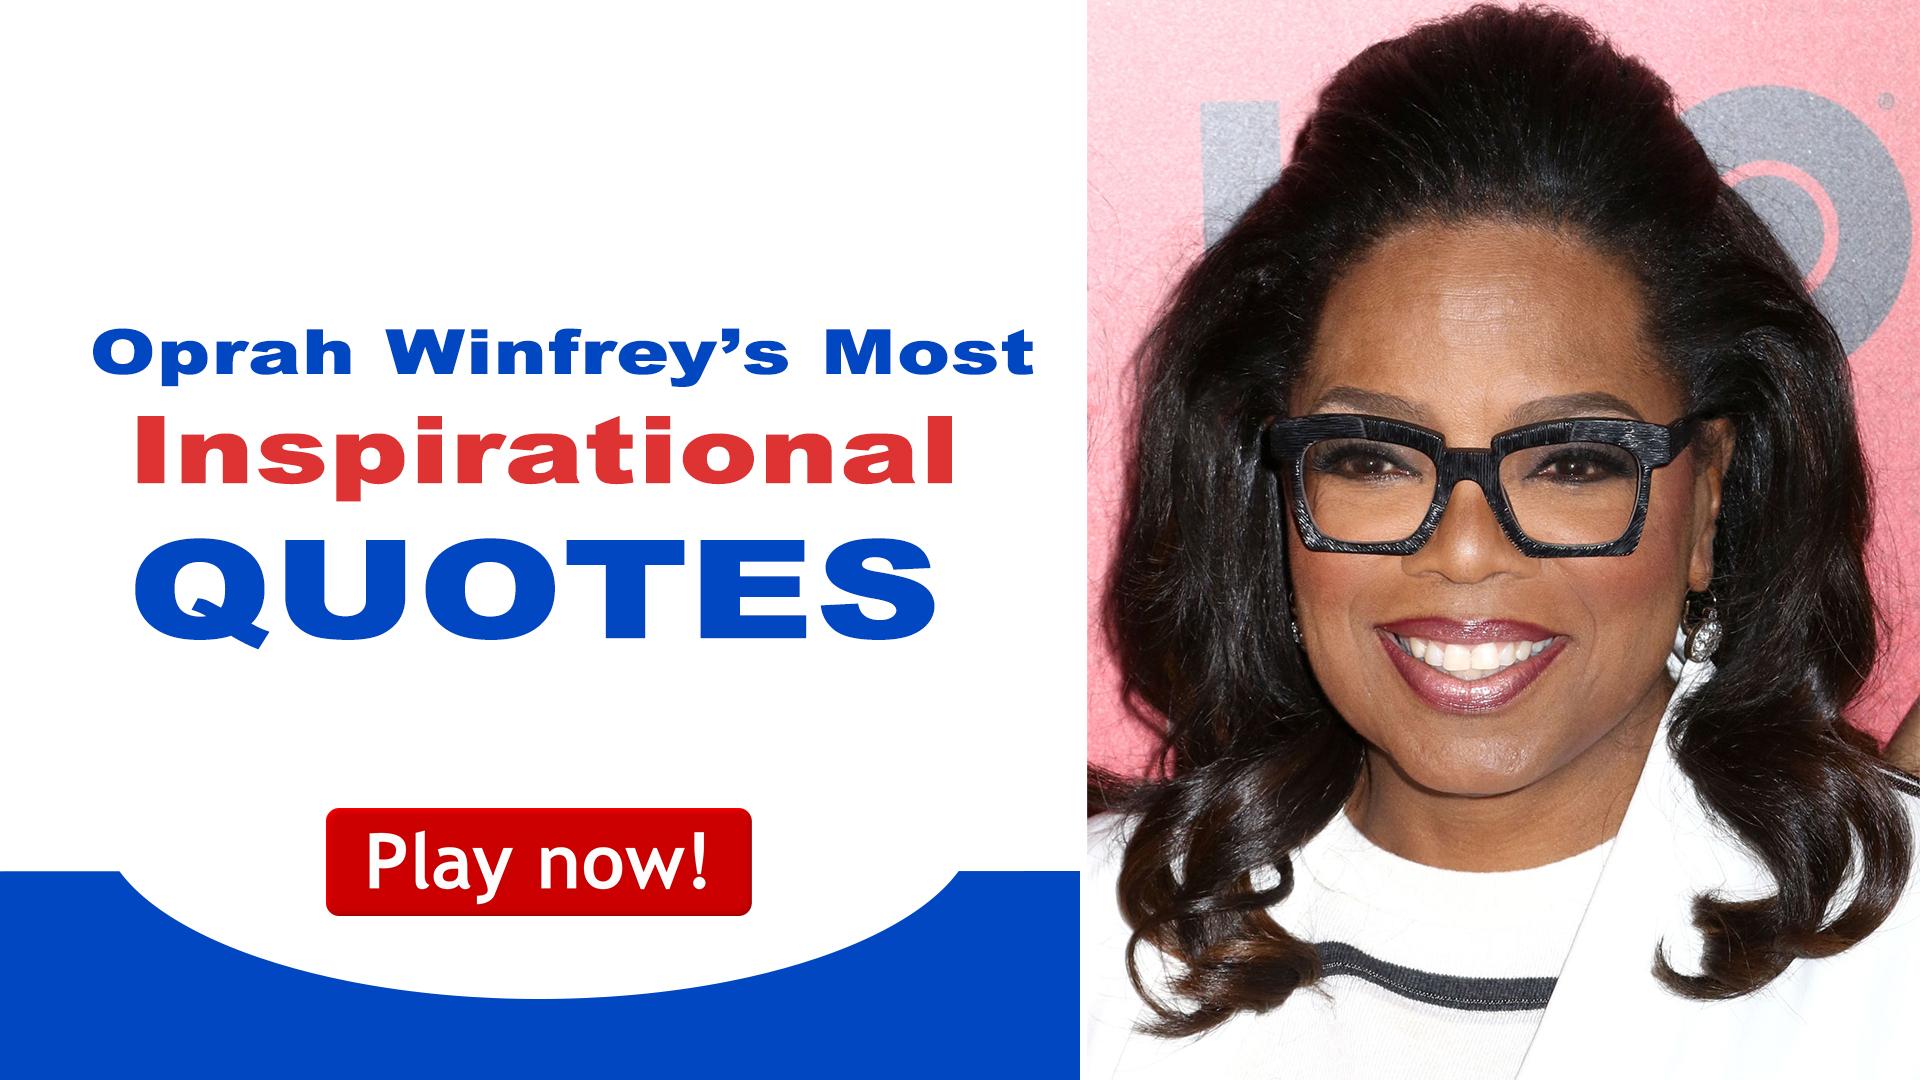 A-classes daily Inspiration - Oprah Winfrey's Most Inspirational Quotes